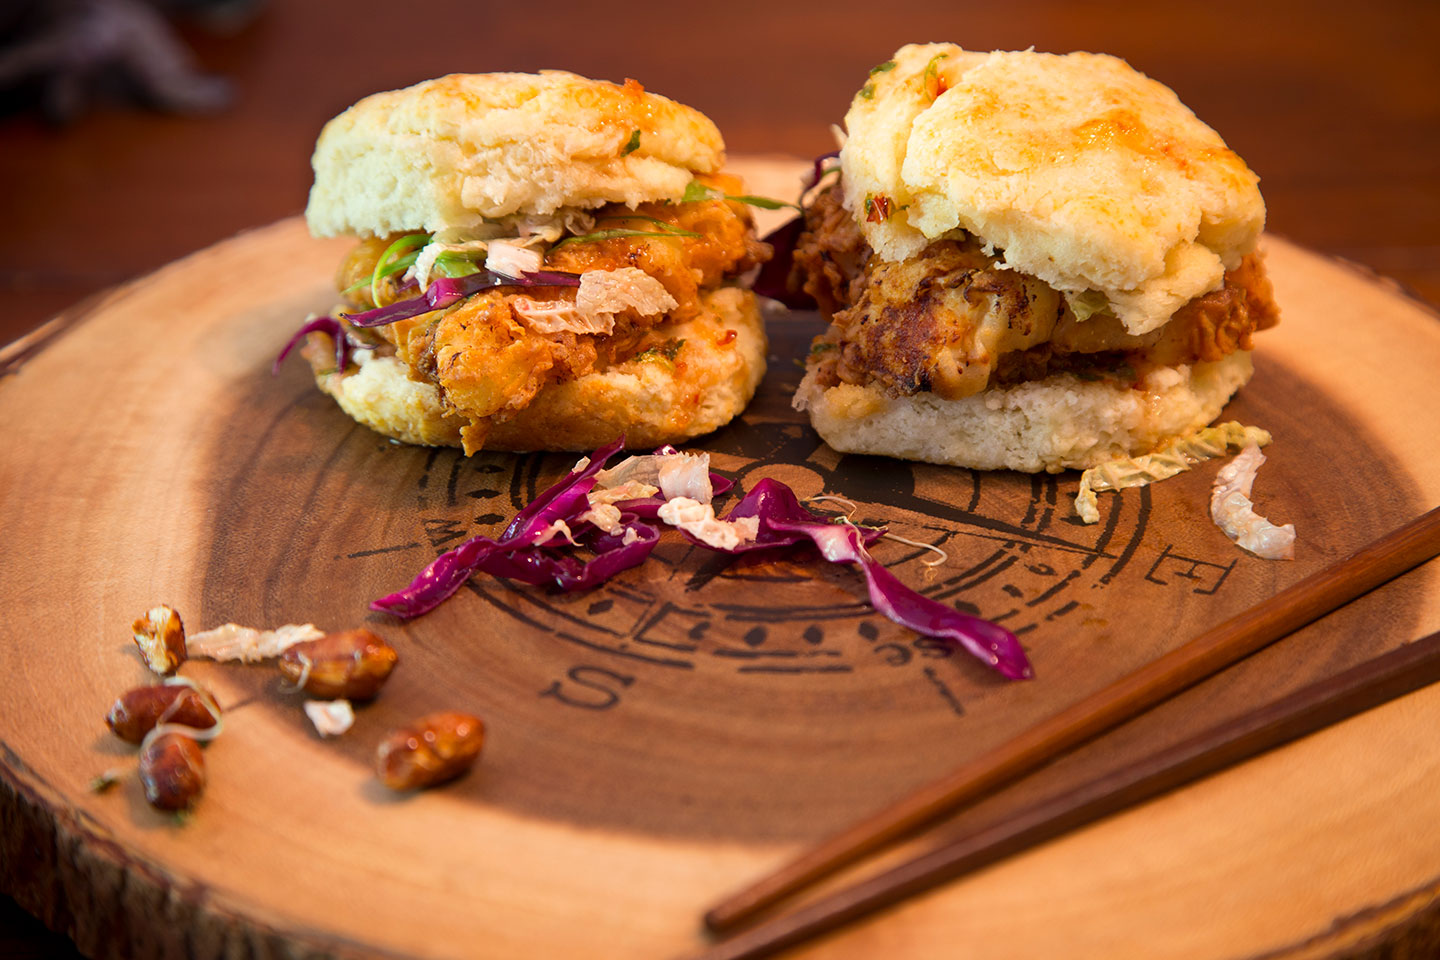 Two chicken biscuits on a wooden platter with a compass engraved on it.